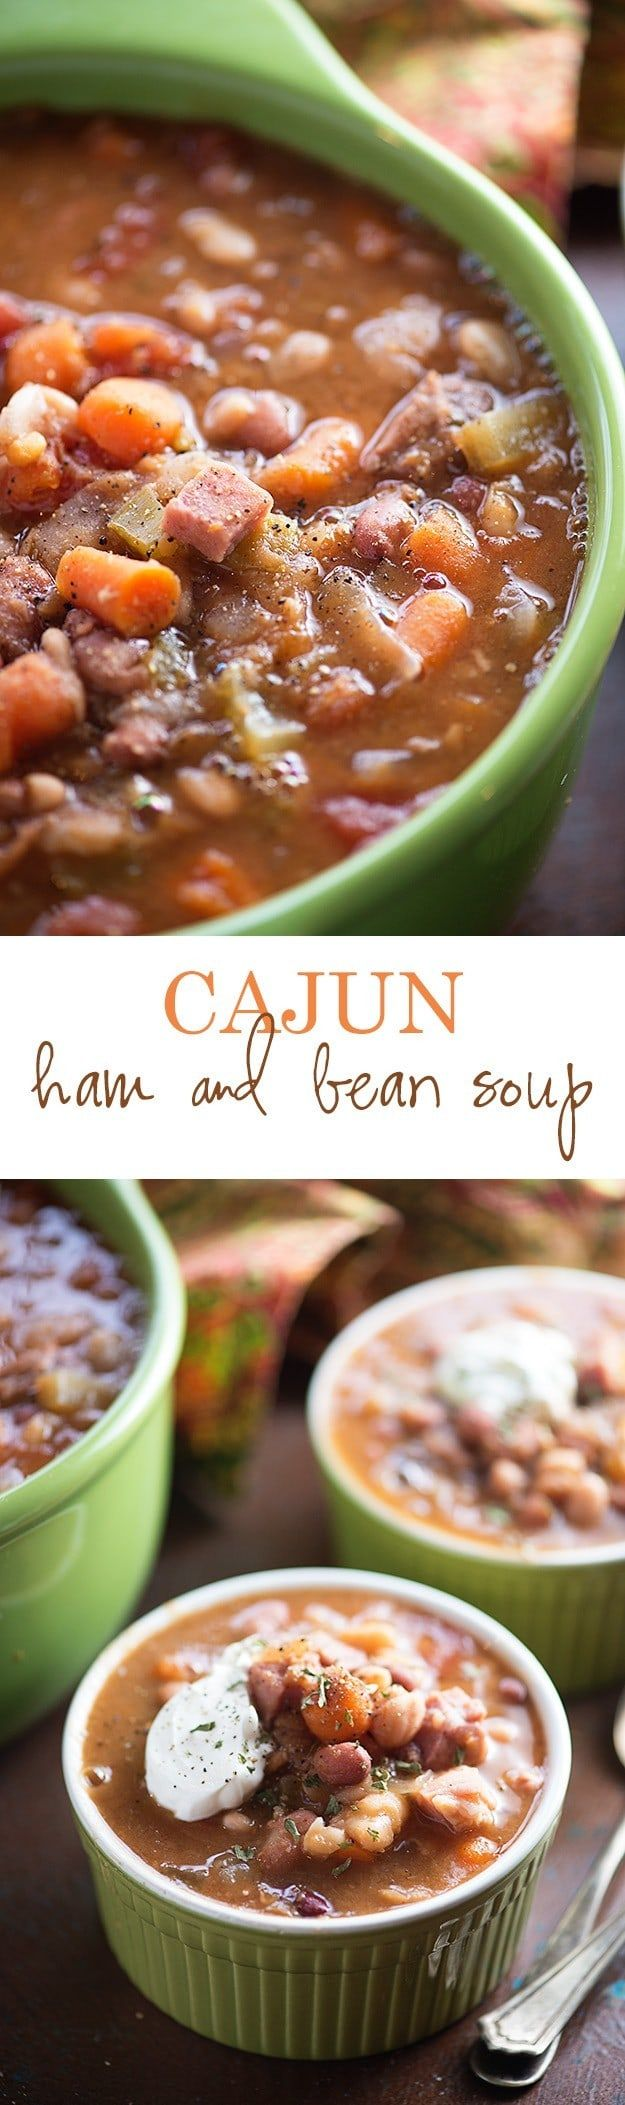 This slow cooker soup recipe is the perfect way to use up that leftover ham!